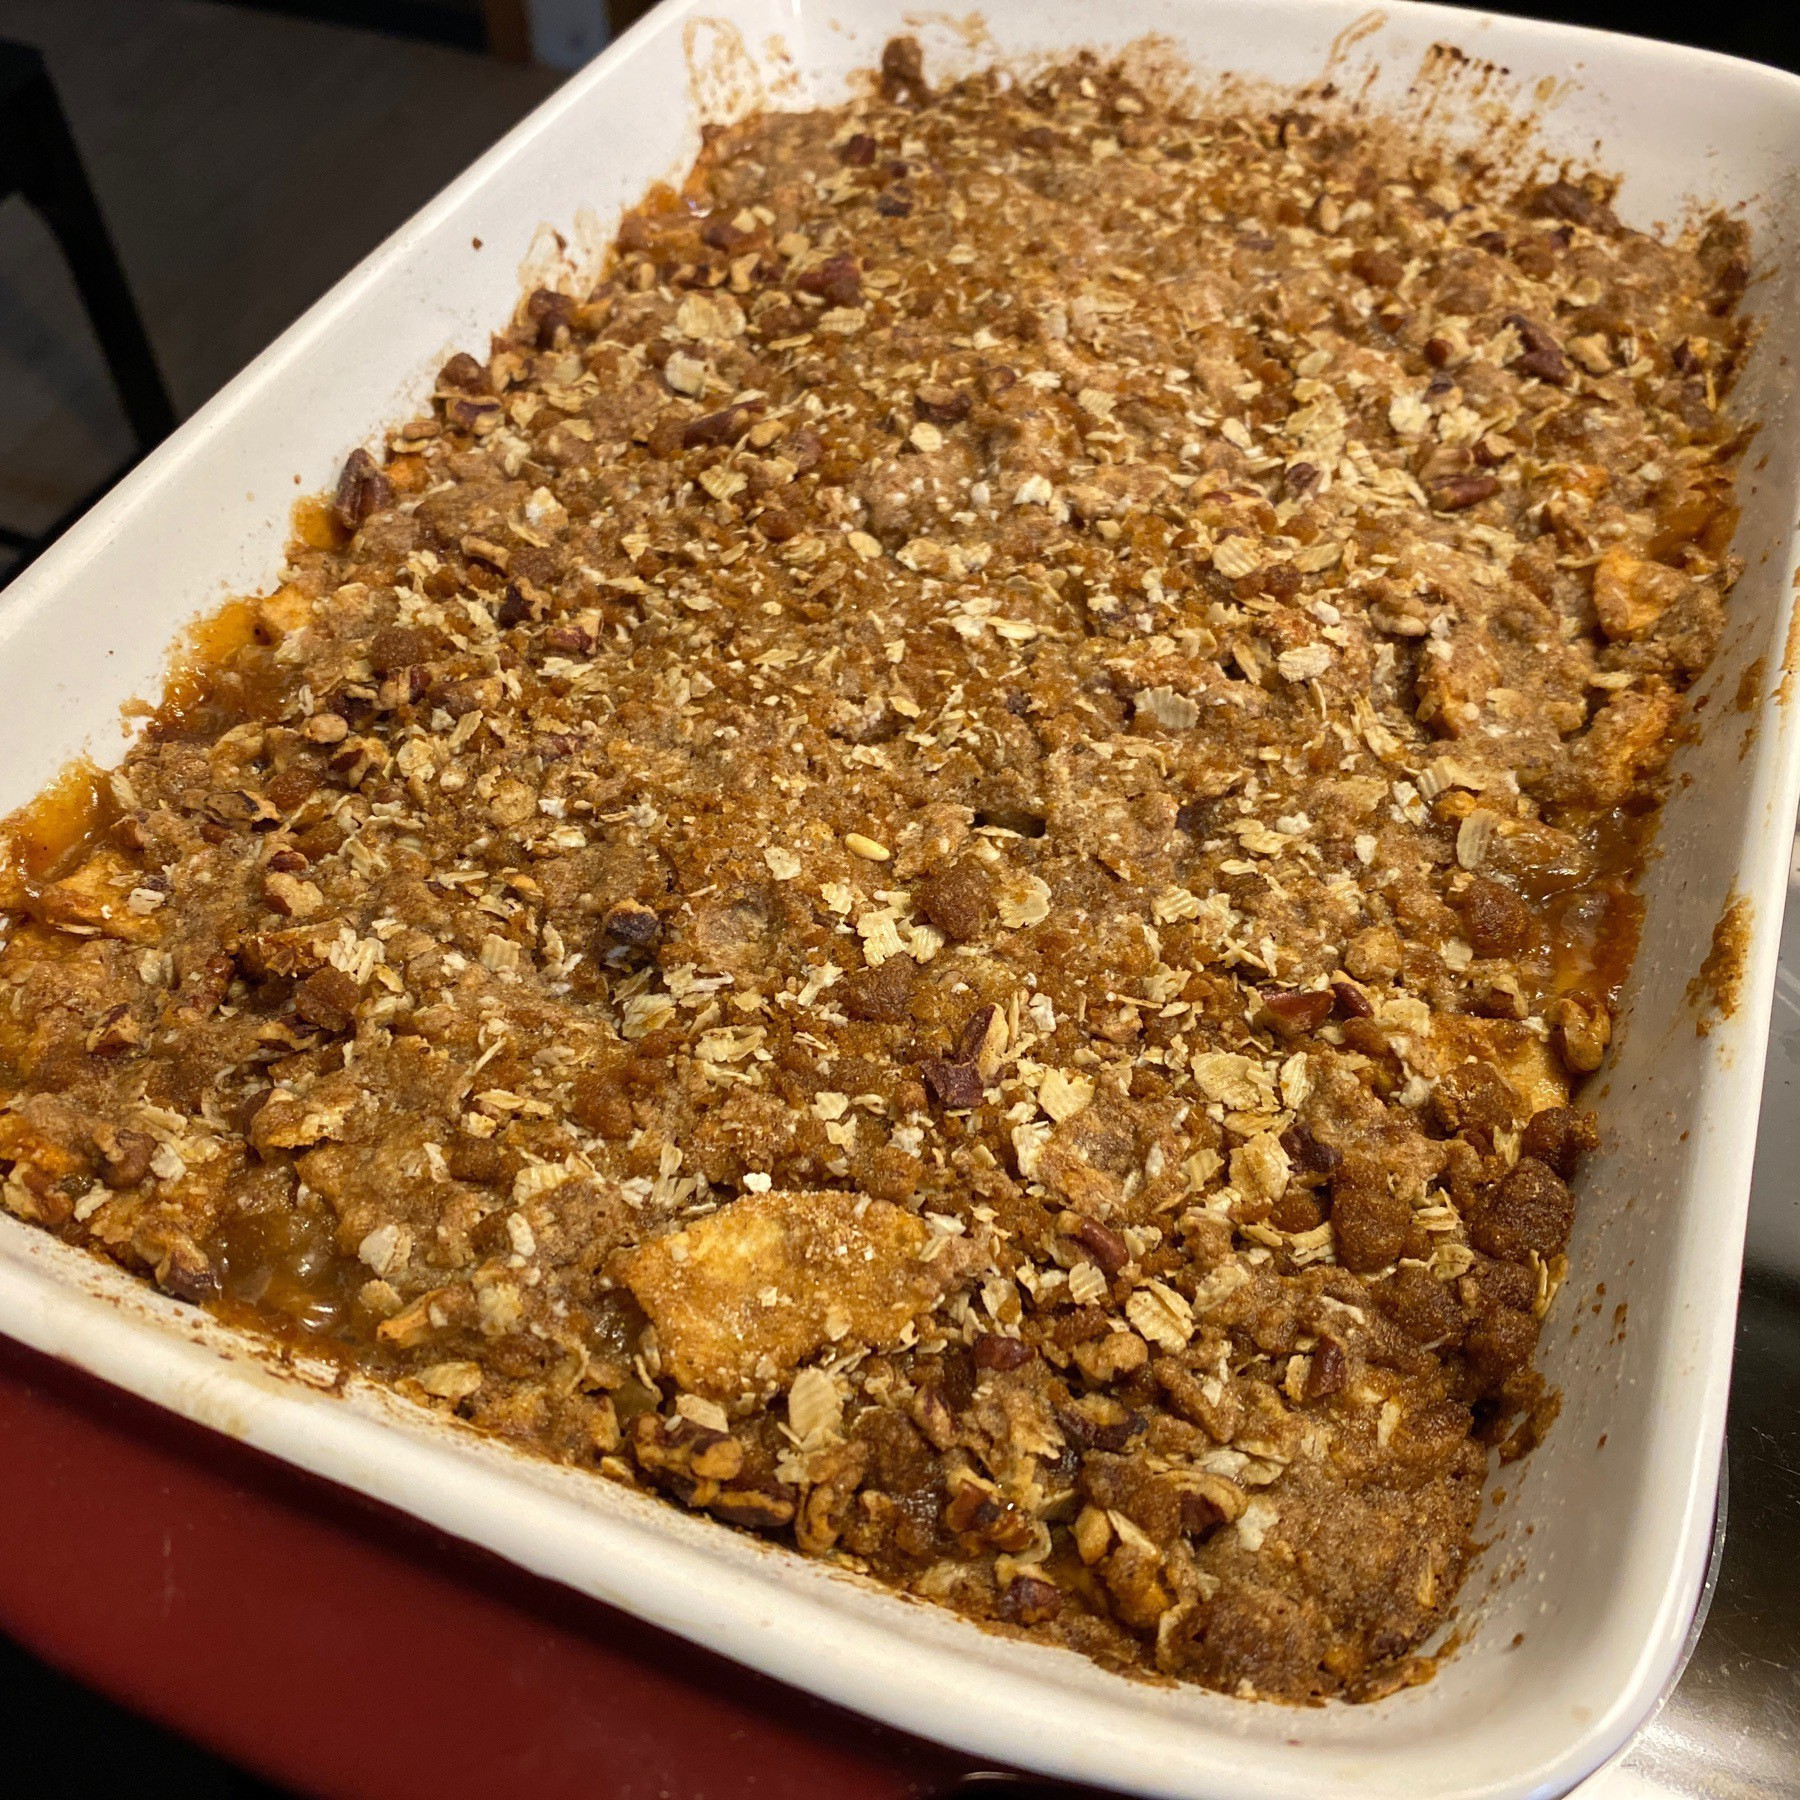 Apple crisp in pan.